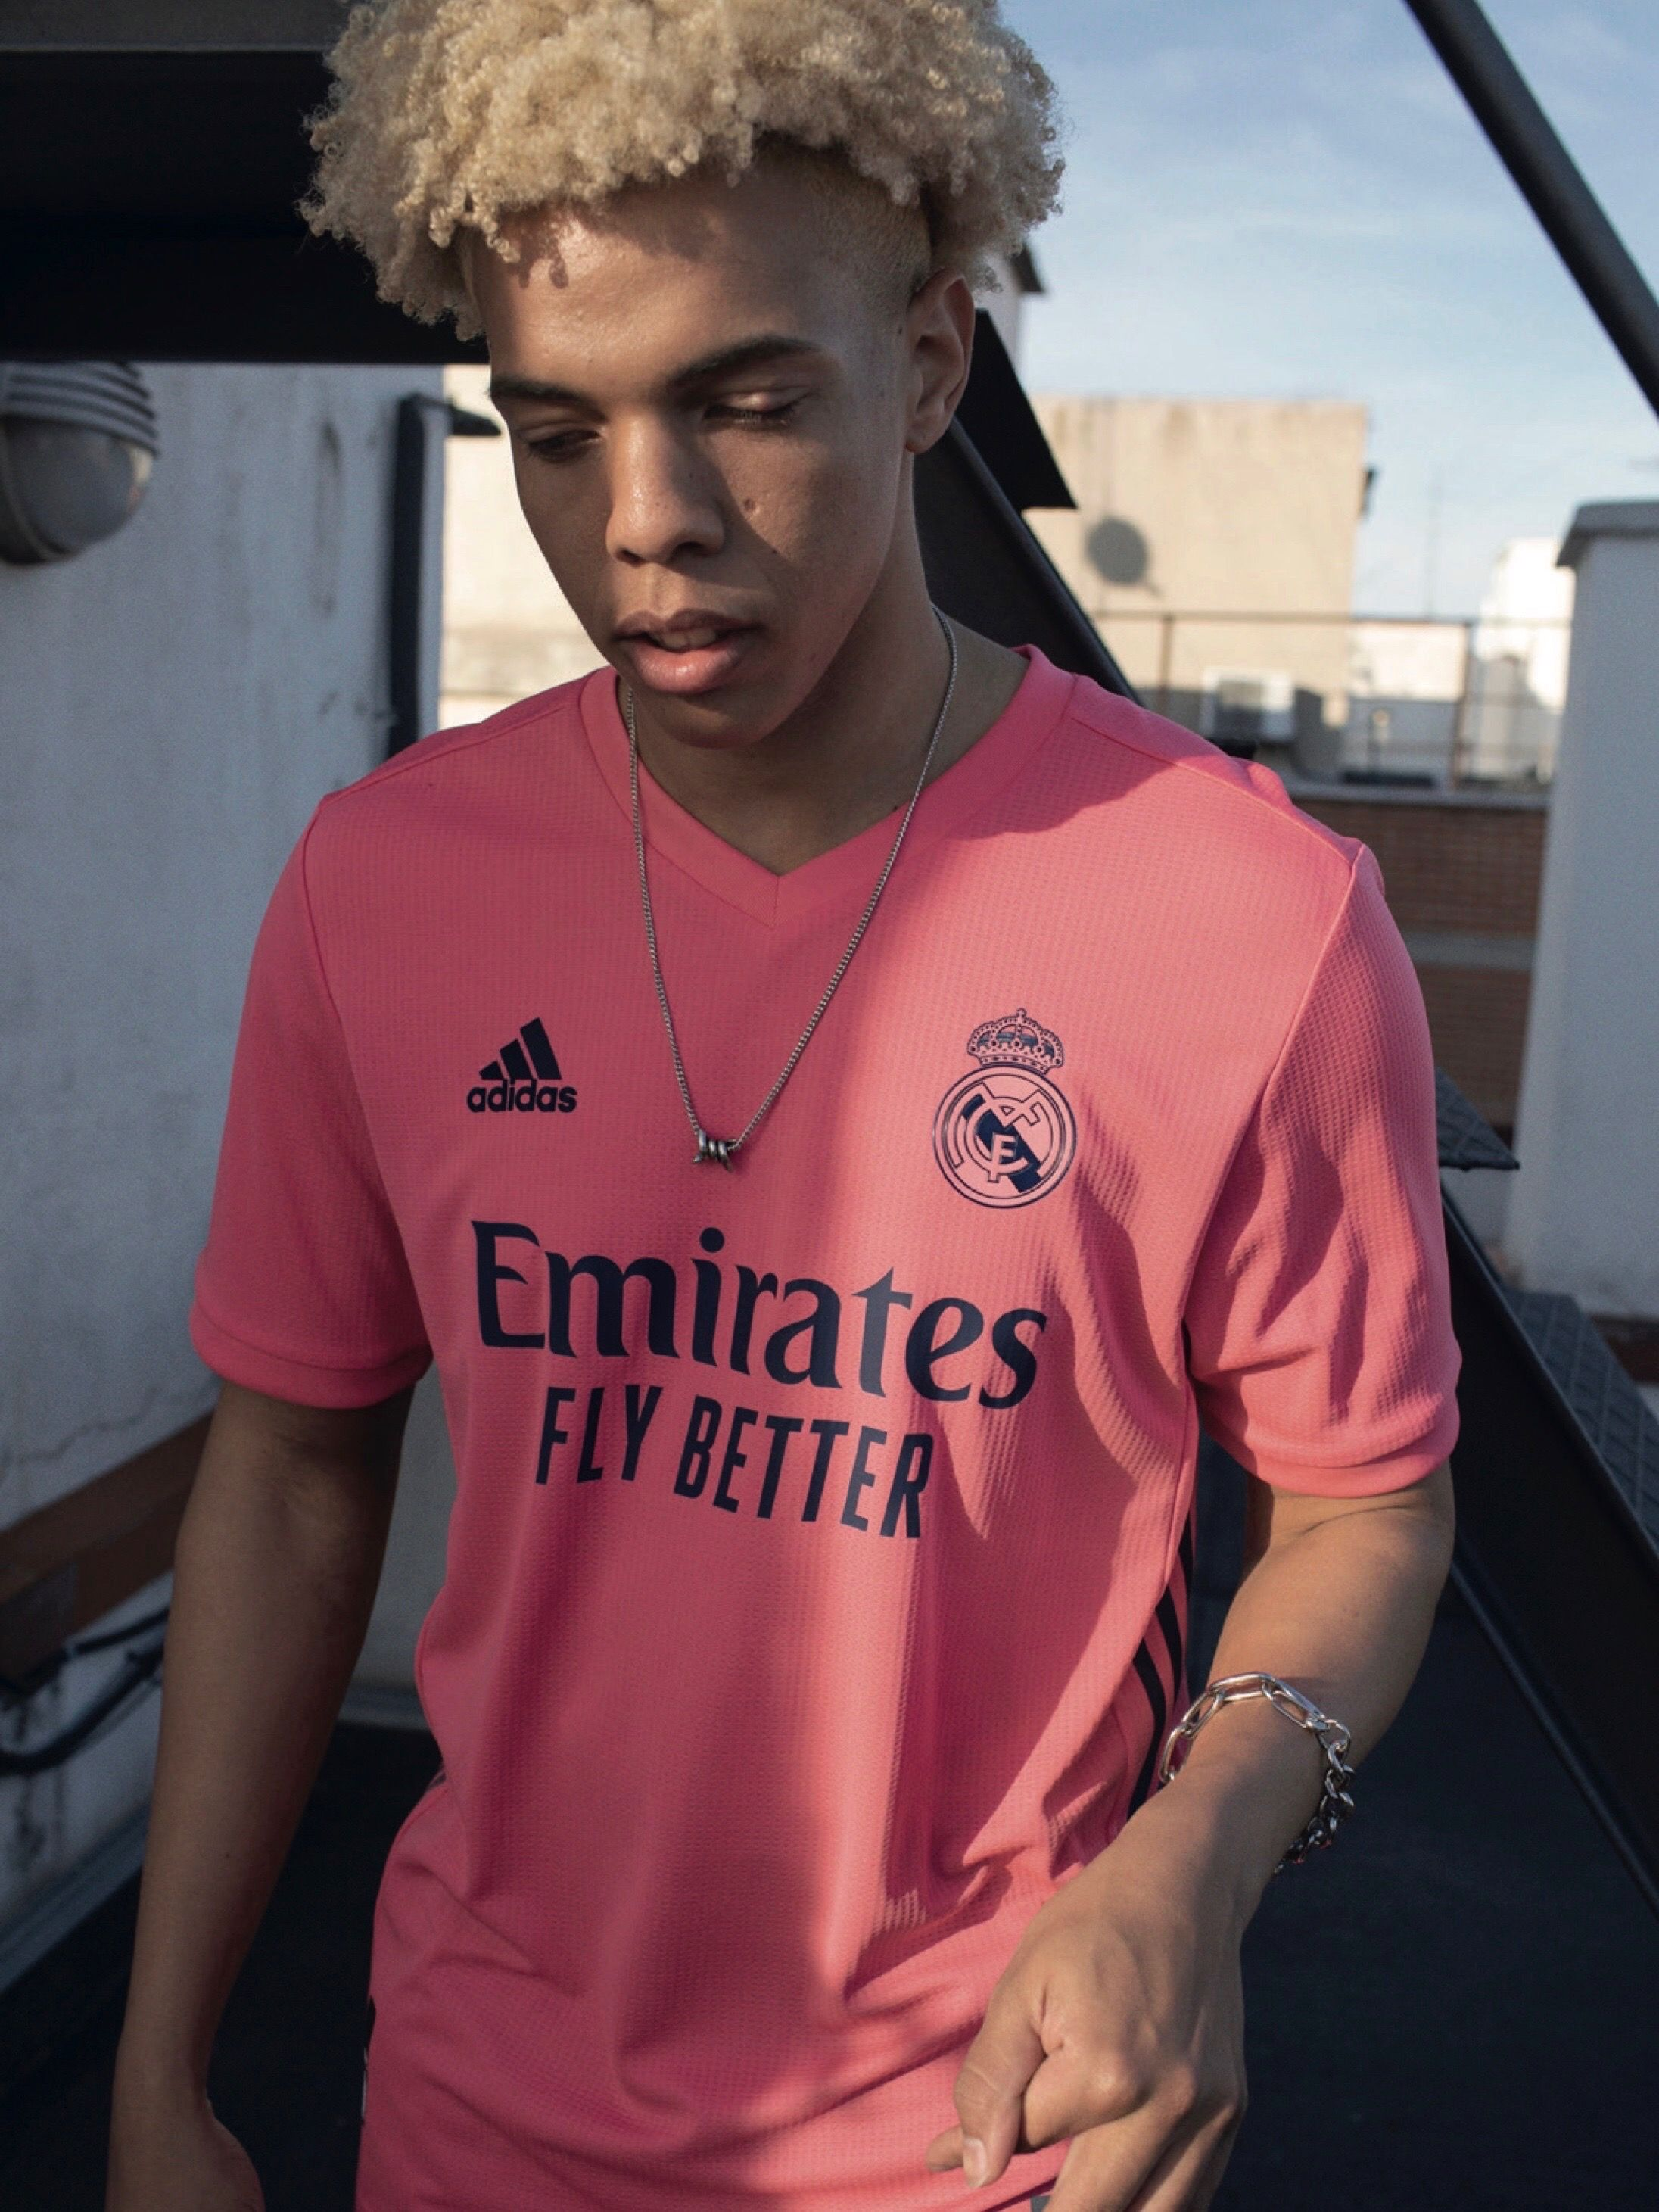 The Real Madrid 2020 21 Away Jersey Is A Bold Jersey Made For Comfort The Eye Catching Pink Away Jersey Absorbs Moisture To In 2020 Adidas Football Real Madrid Madrid